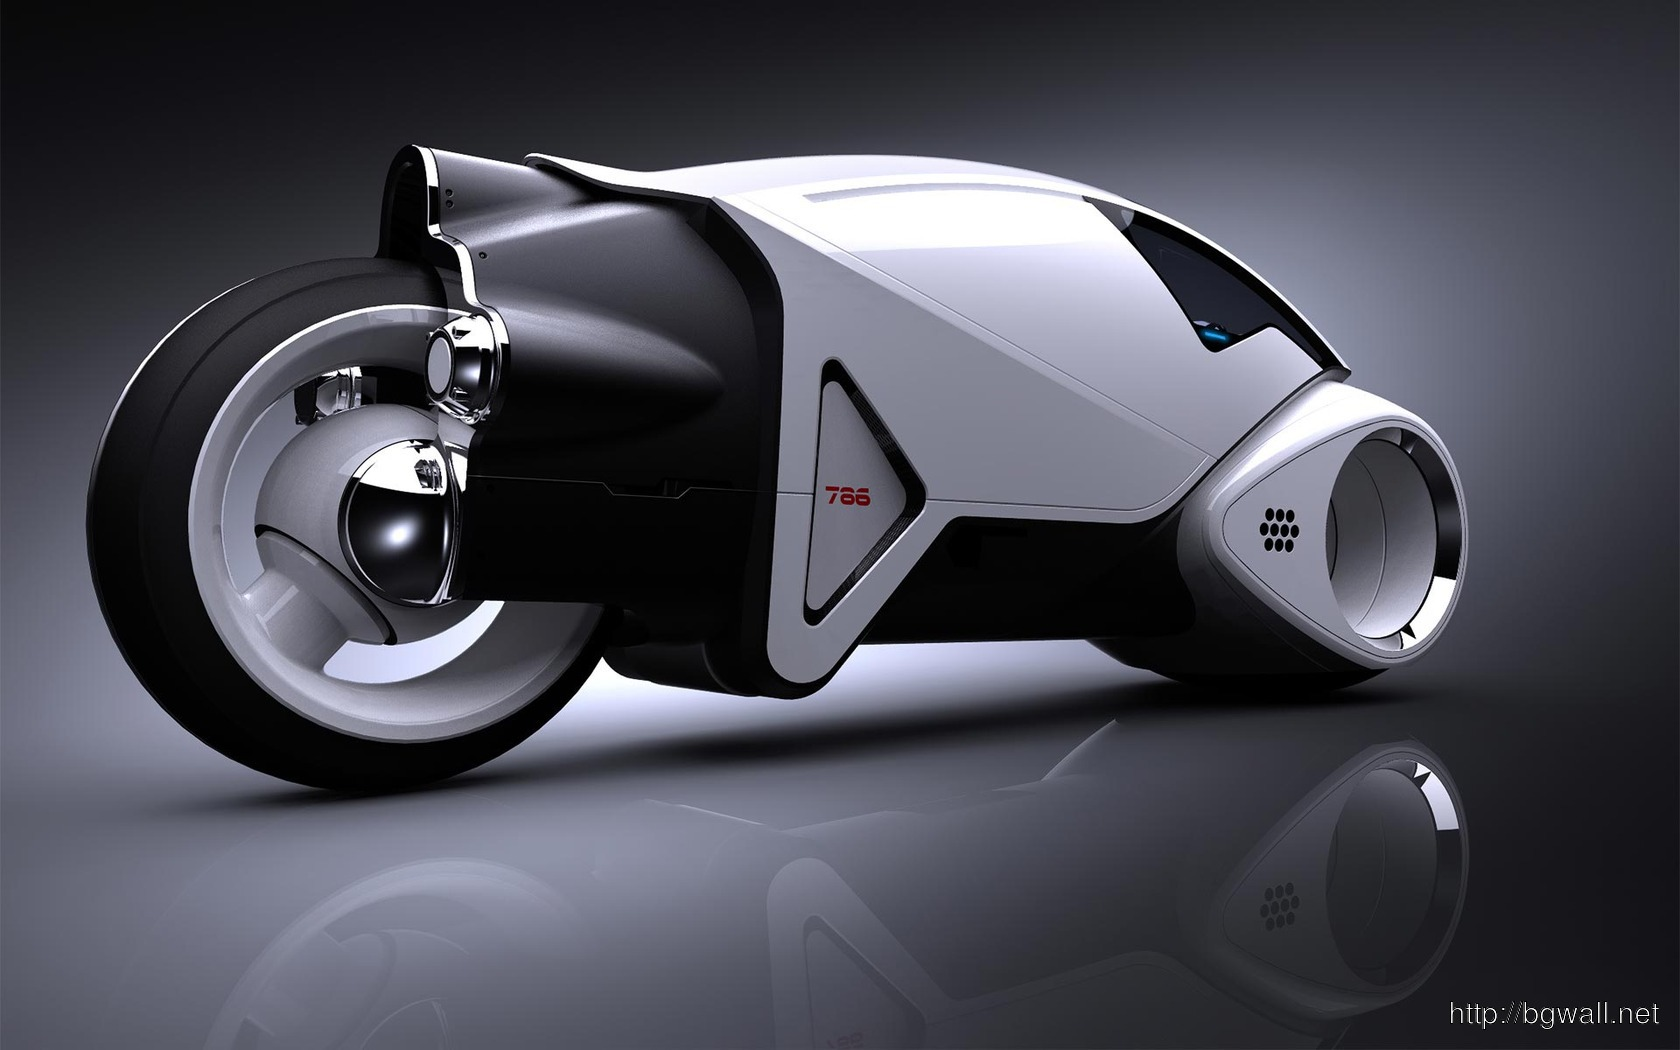 Download Tron Legacy Light Cycle Prototype Wallpaper Full Size